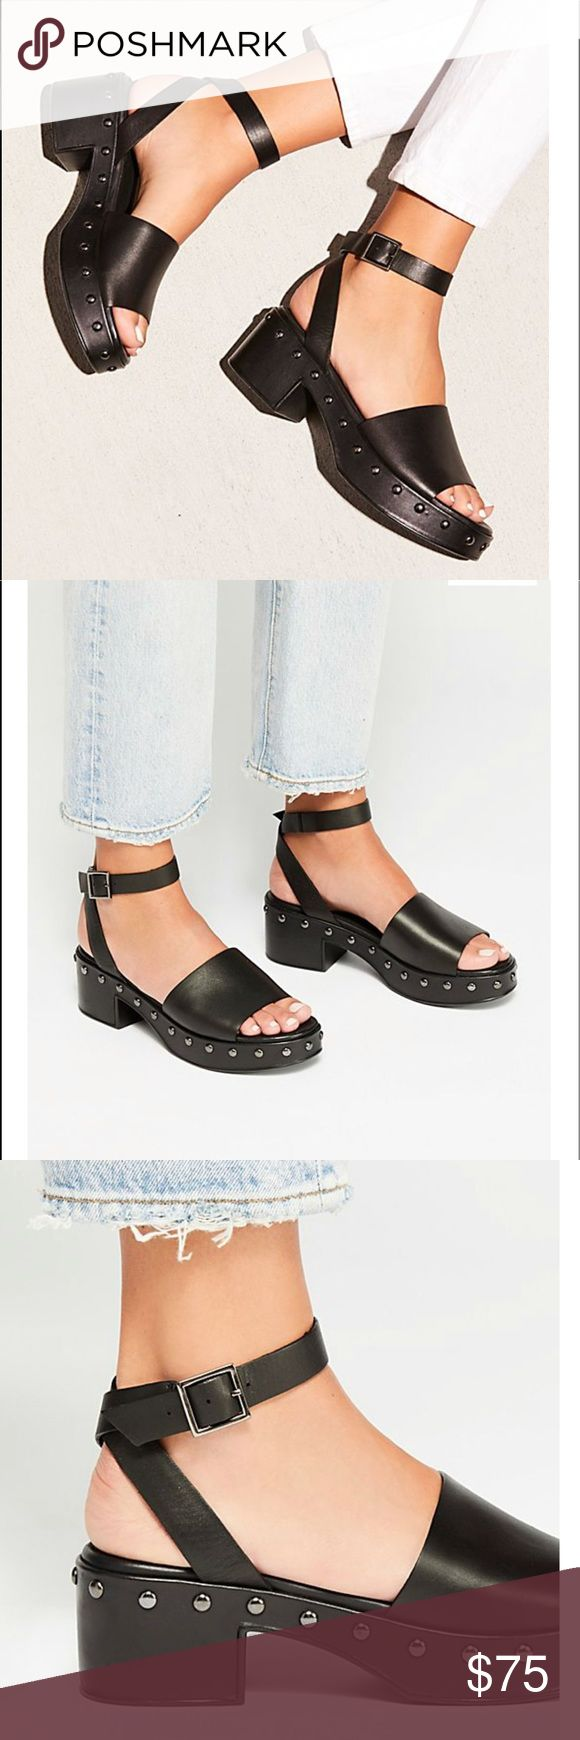 4a084c07bfa NWT Free People Stand By Me Platform Sandal Platform clog-style sandal  featuring studded details